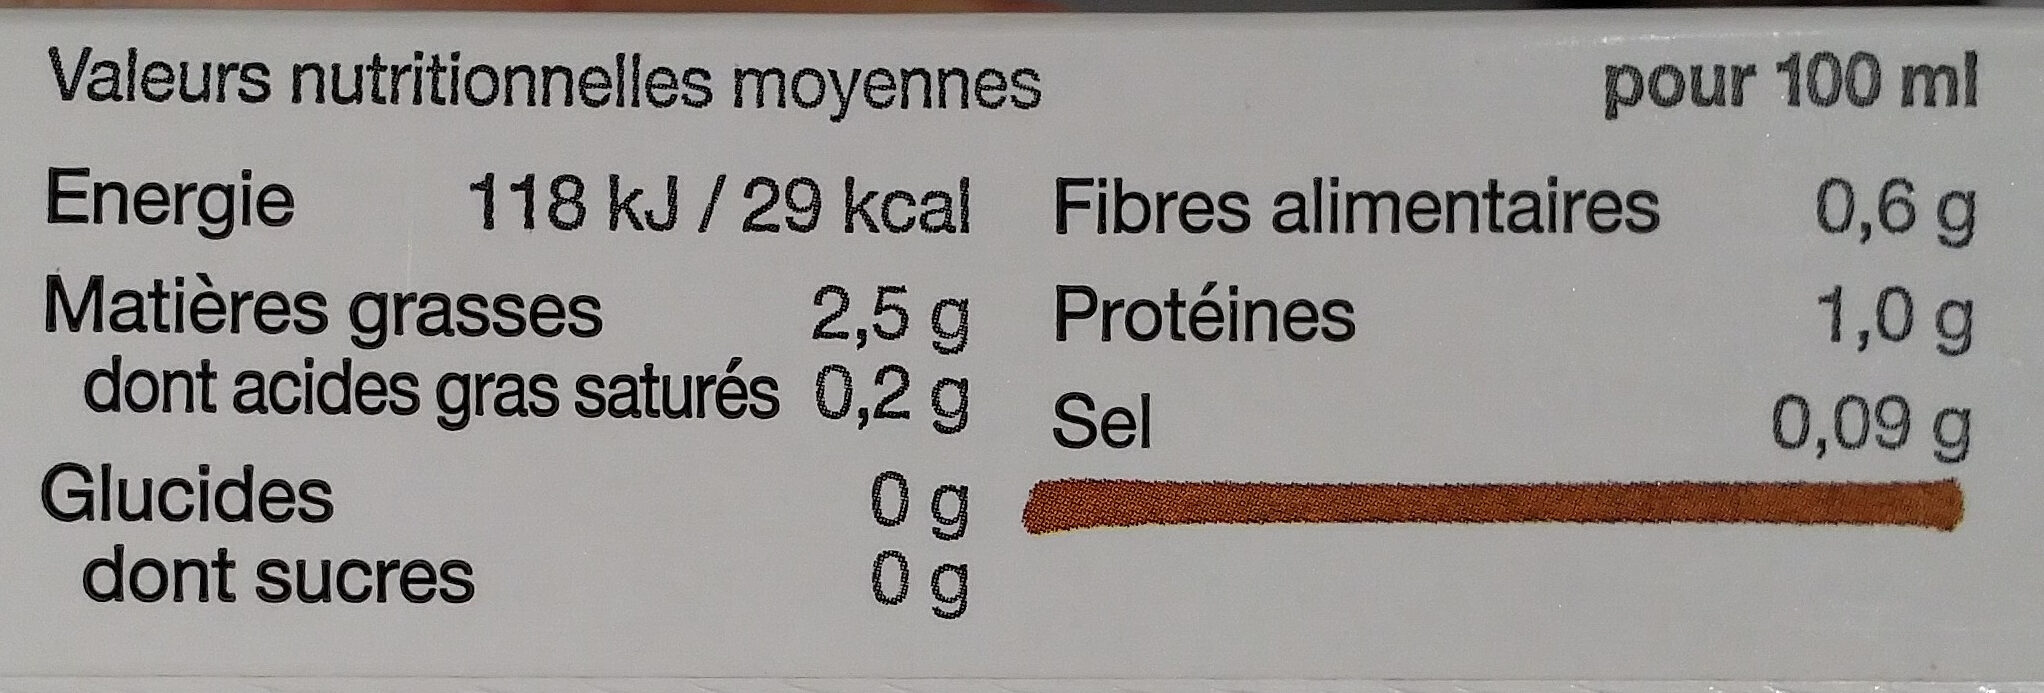 Amande. Sans sucres. - Nutrition facts - fr